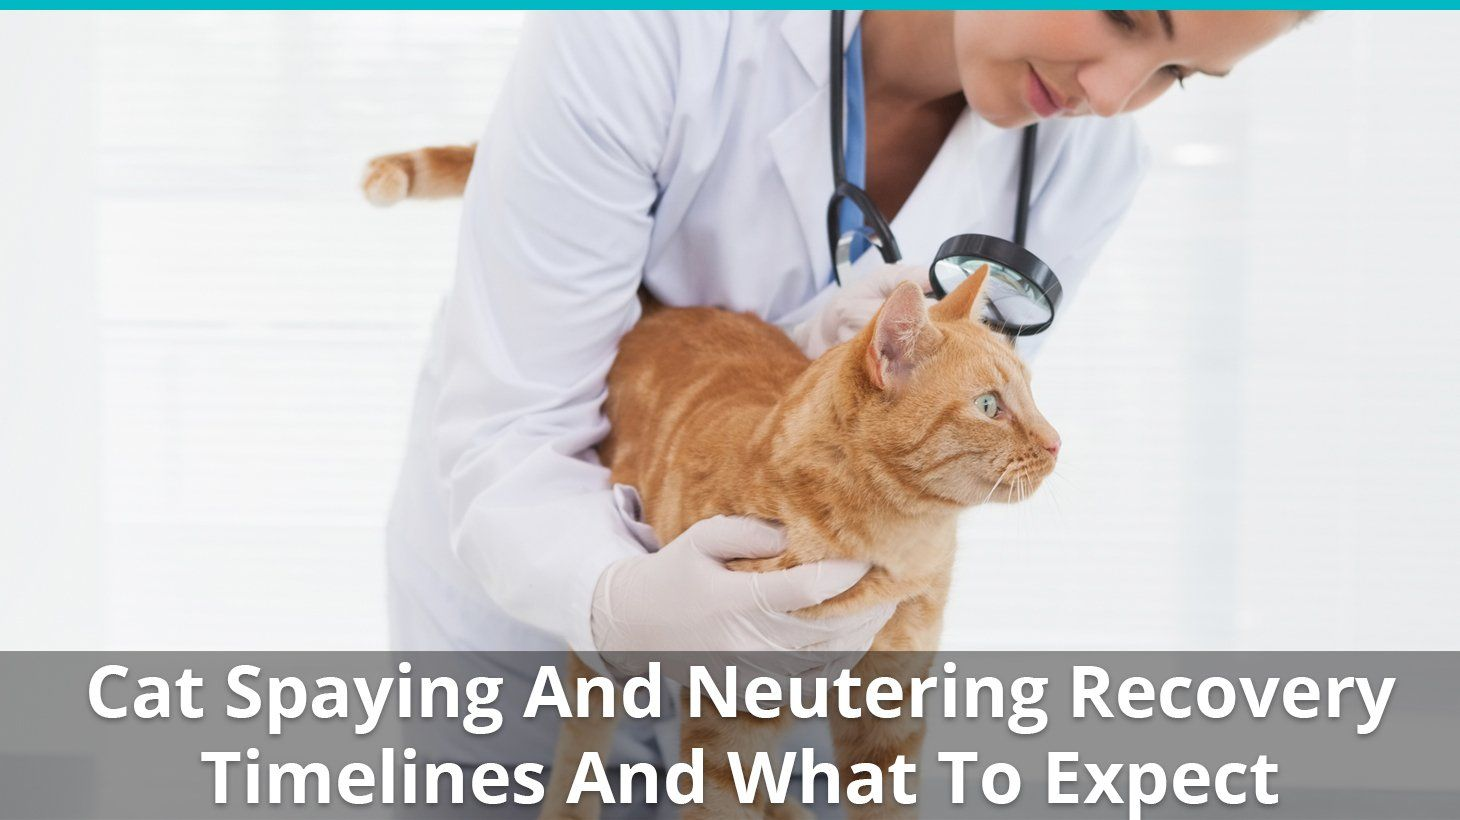 Cat Spaying And Neutering Recovery Timelines And What To Expect Cat Neutering Cats Pet Clinic